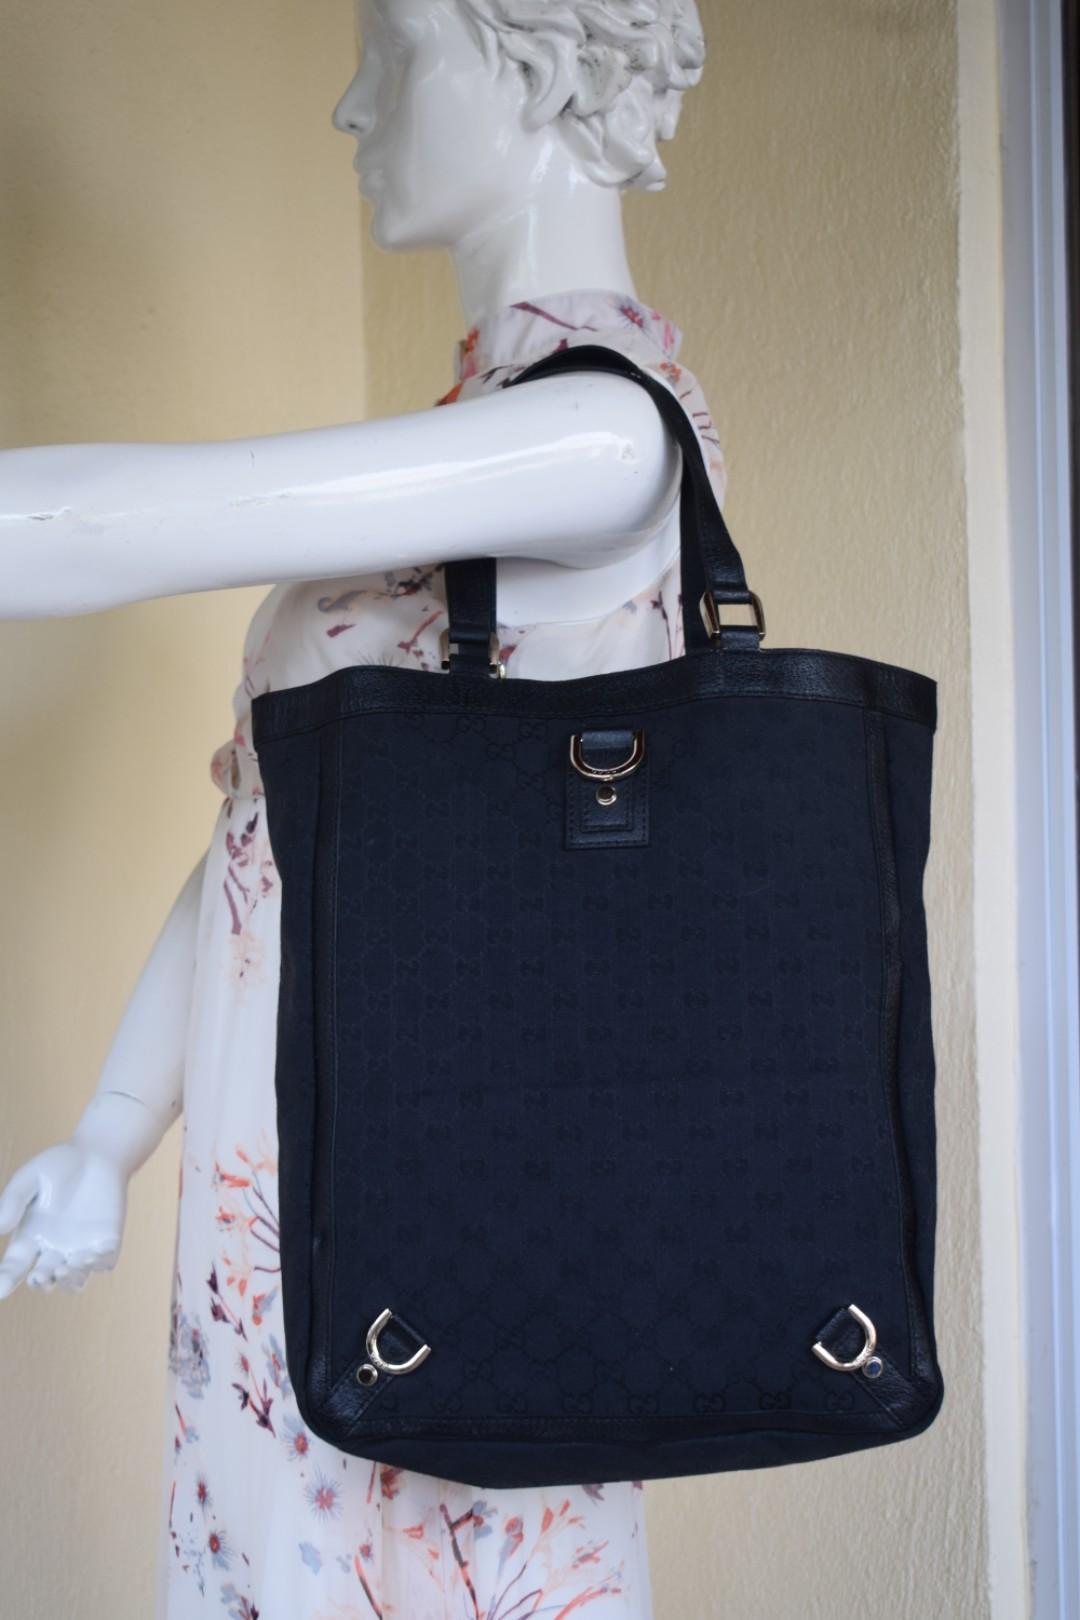 e8de6940c7 Gucci GG Black Monogram Canvas Tote Bag, Luxury, Bags & Wallets on Carousell